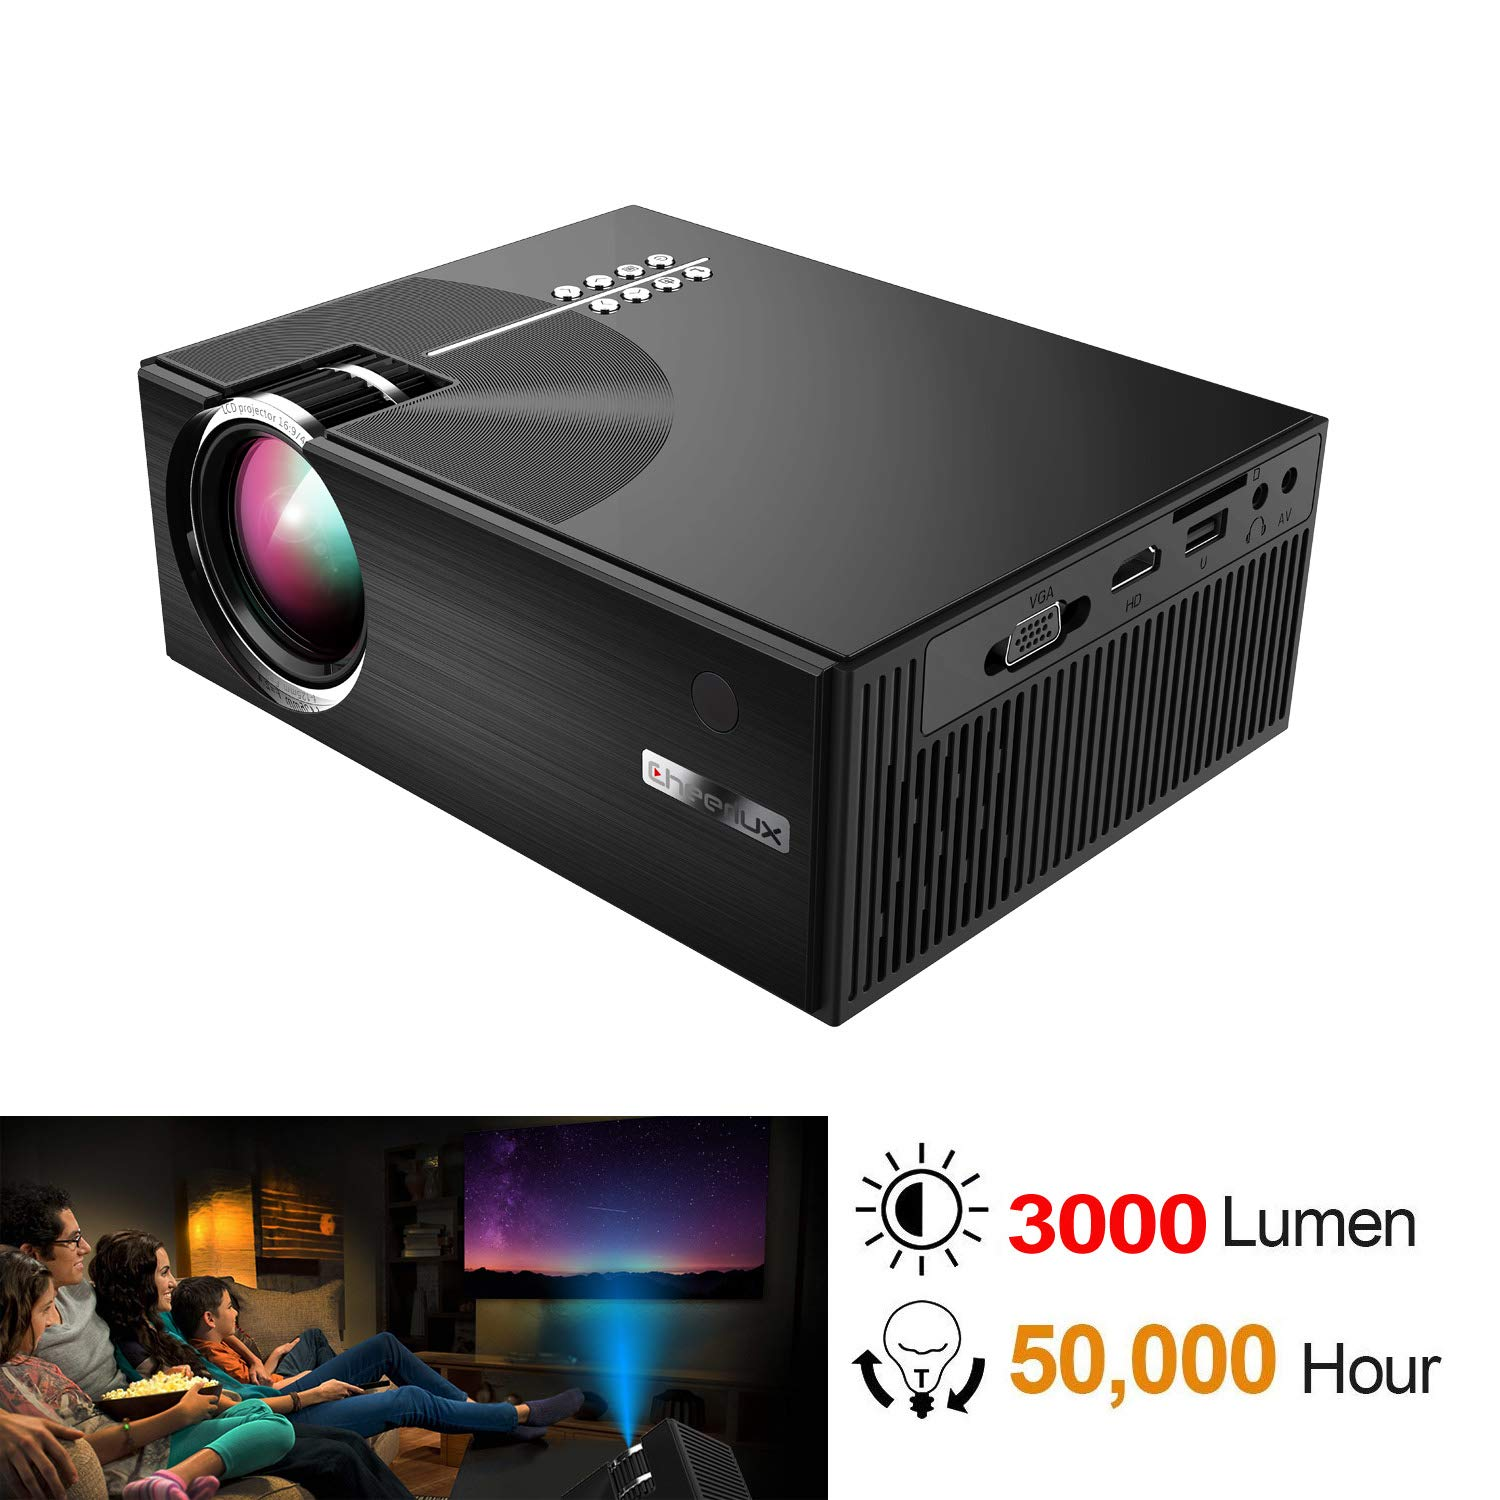 TOPRUI Mini HD LED Projector, Portable 3000 Lumens LCD 1080P Video Projector with Low Fan Noise Stereo Speaker, Support HDMI USB VGA for Home Cinema TV Party,Outdoor Movie Night 2018 Upgraded